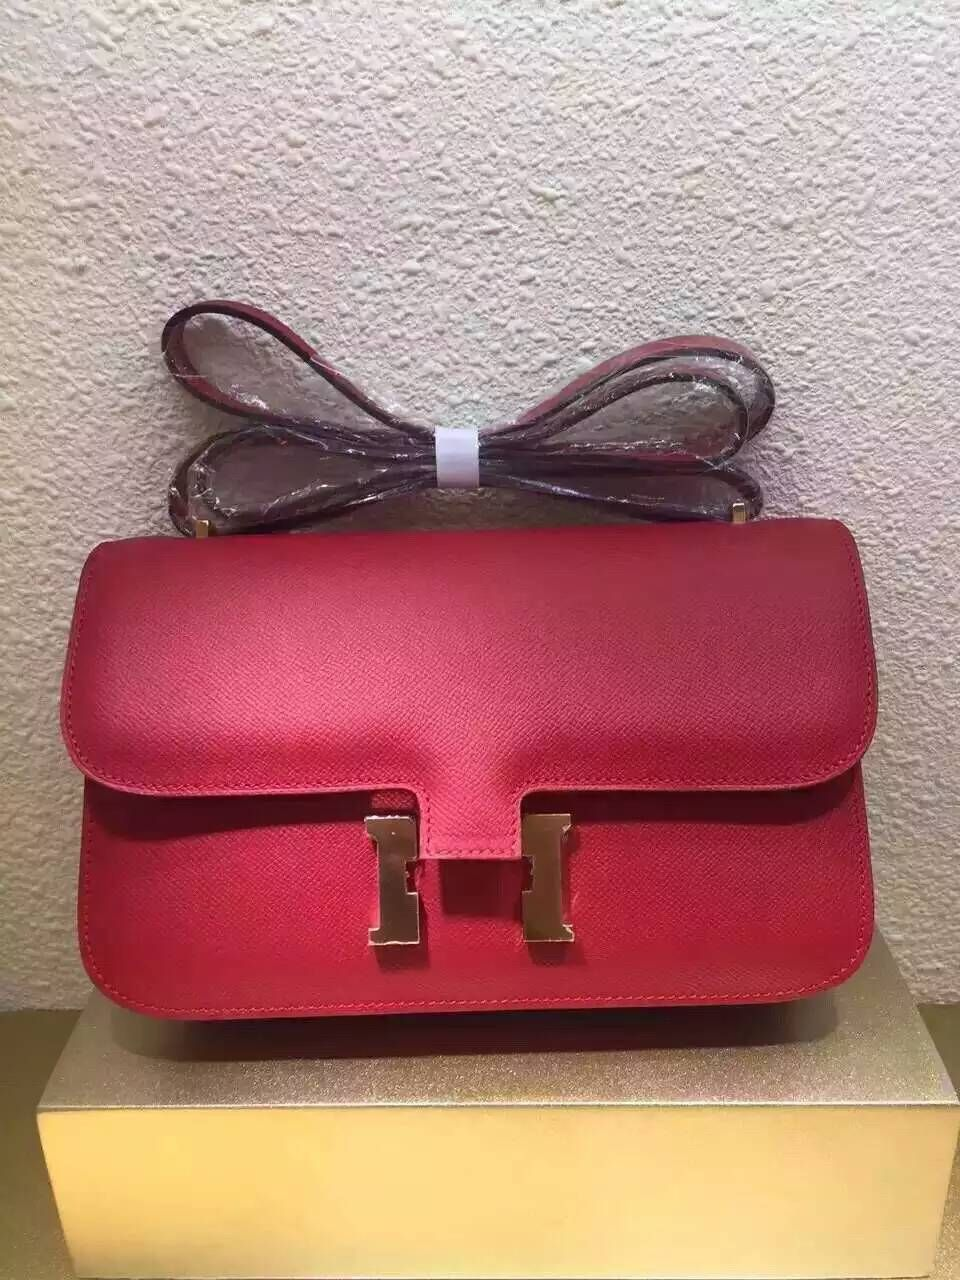 Limited Edition!2016 Hermes Little Bags Outlet With Free Shipping-Hermes  Classic Constance Shoulder Bag 26CM in Red Veau Epsom 187f956fba33f